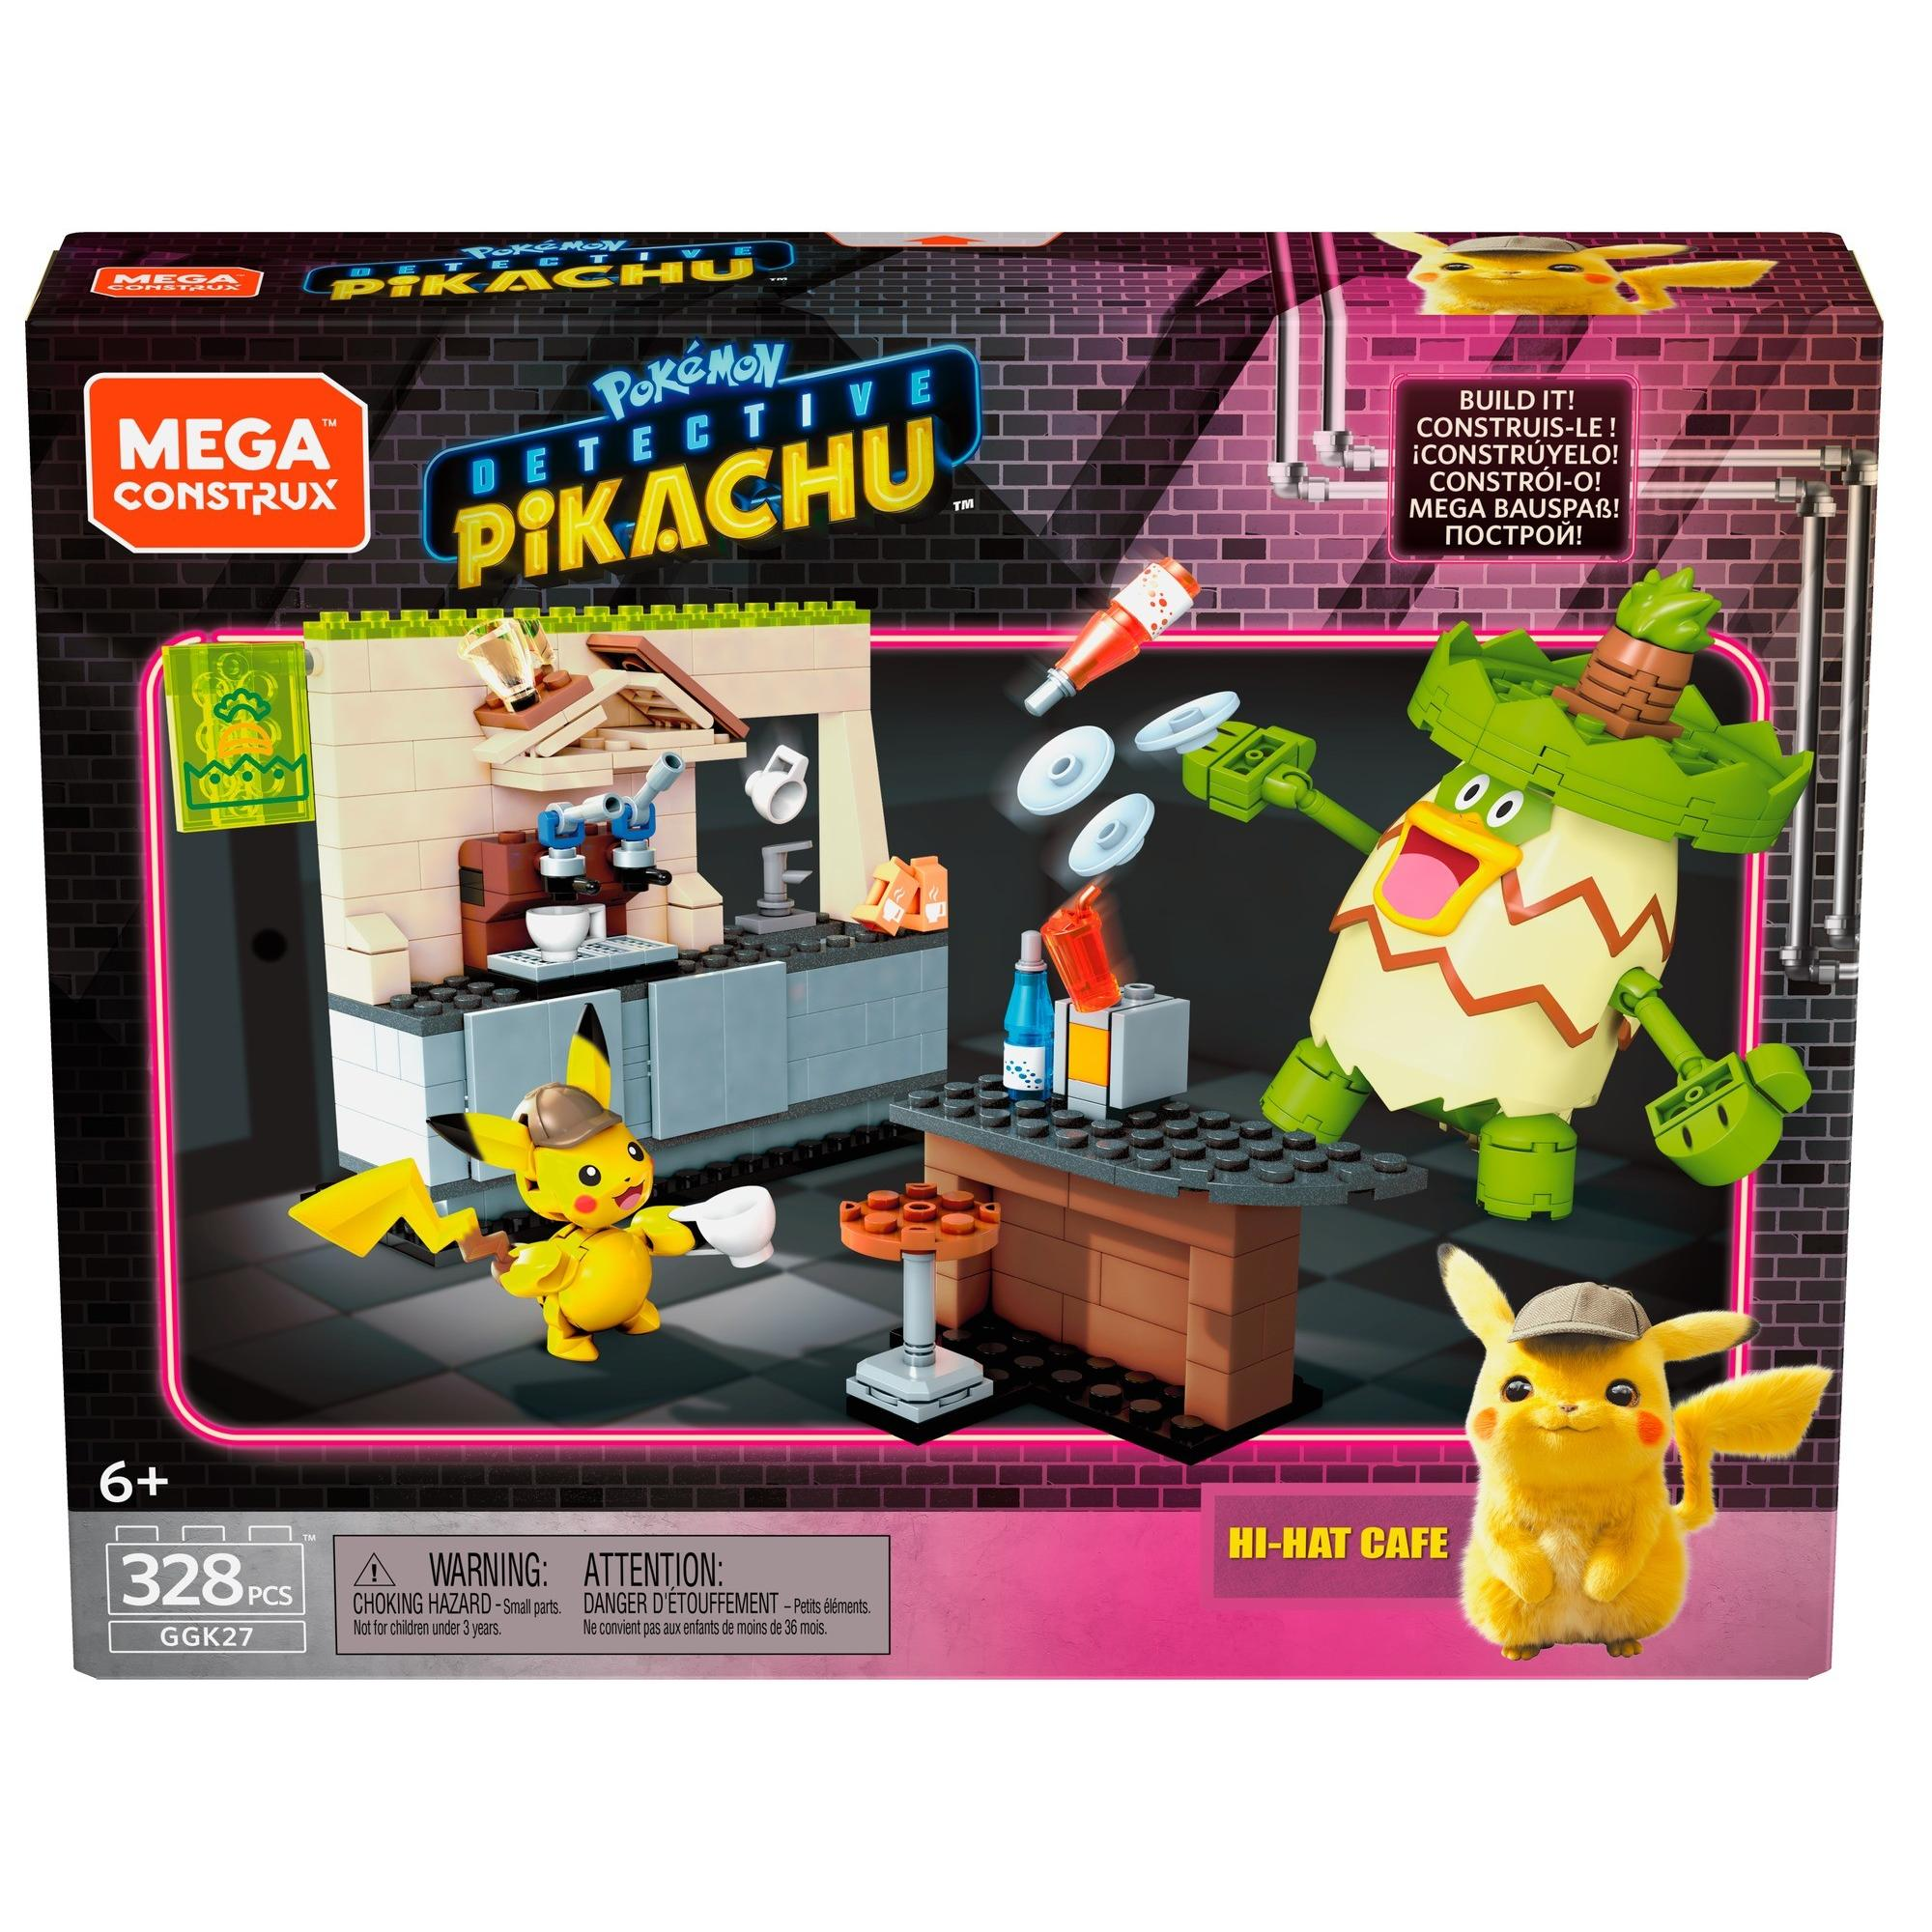 Mega Construx Pokemon Detective Pikachu Hi Hat Cafe Construction